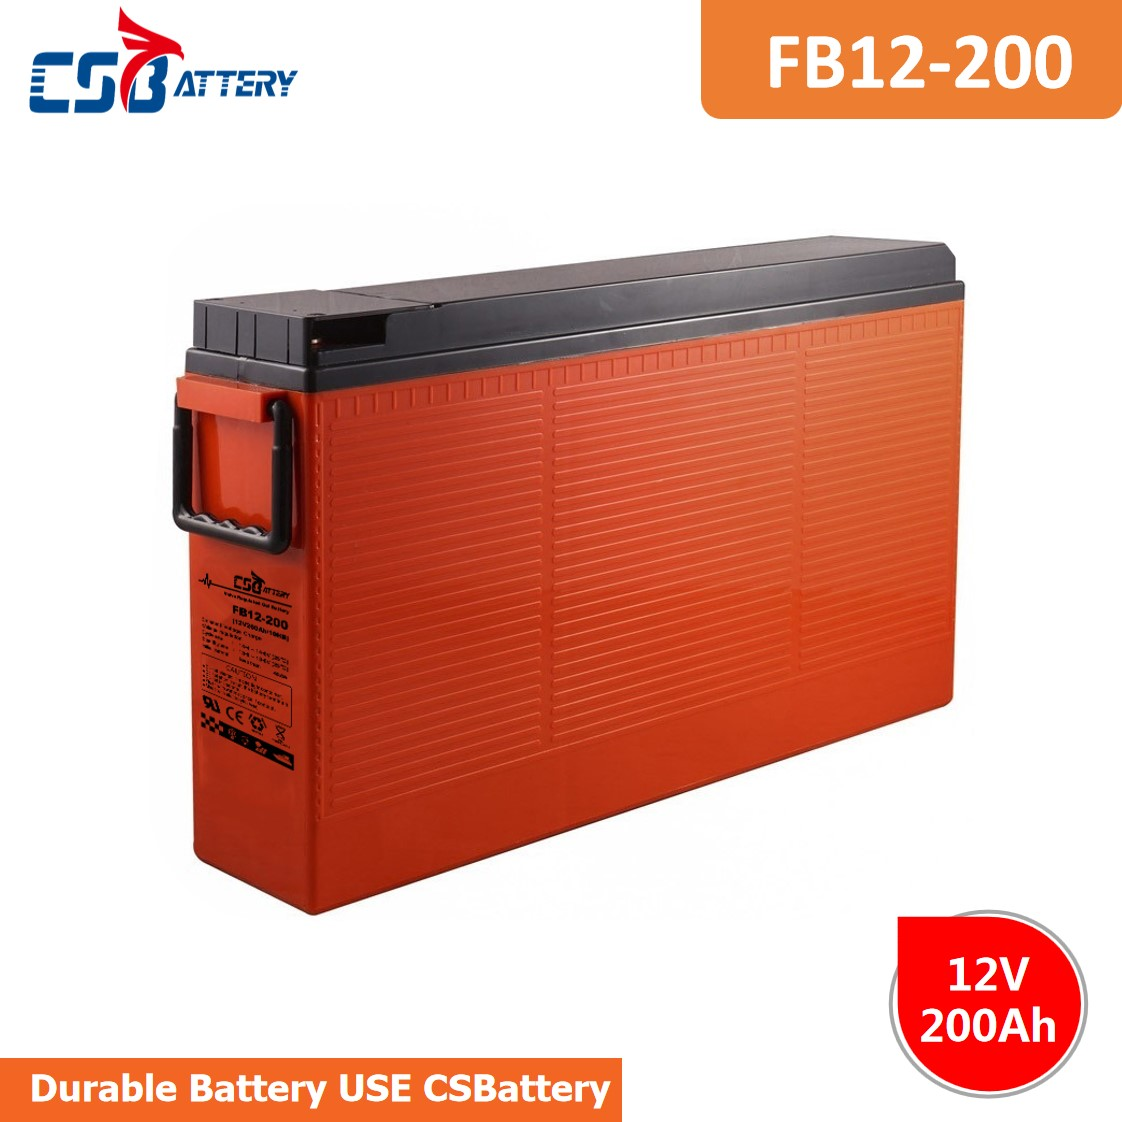 CSBattery 12V 200Ah silmFront Terminal        AGM Battery for Car/Bus/UPS/Electric-power/power-tools/Golf-car/solar-storage